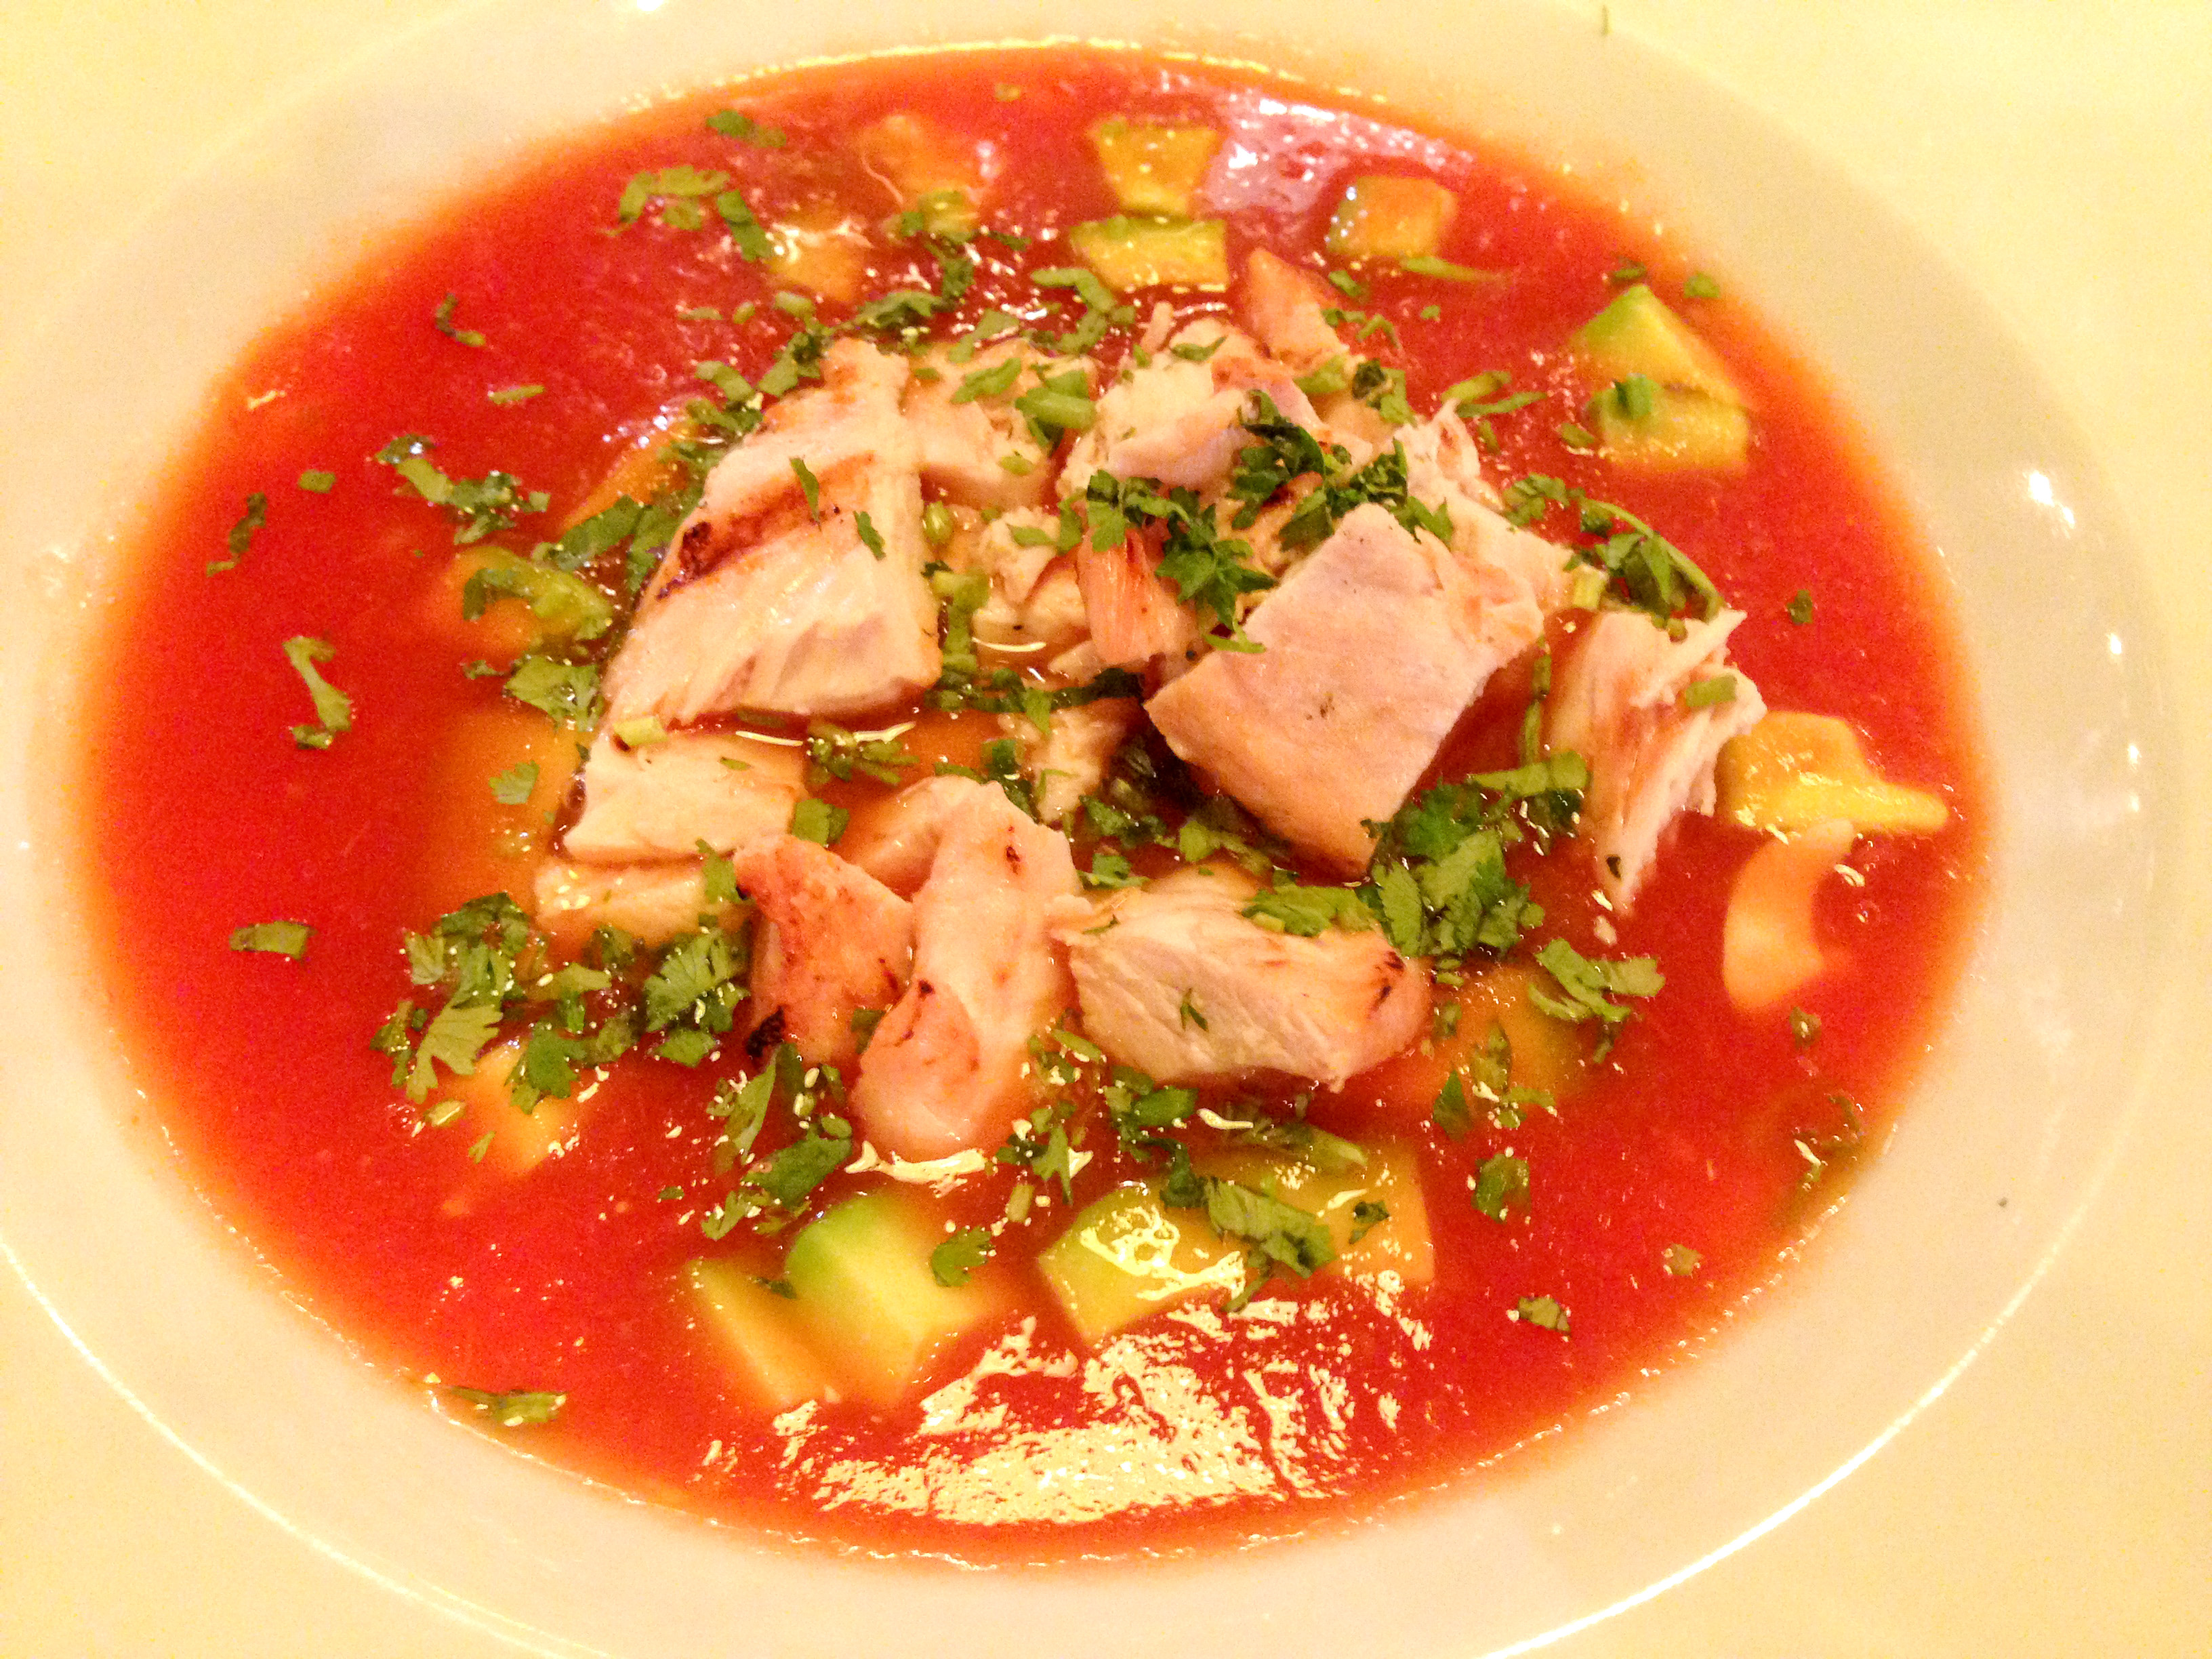 Bowl of tomato soup with chicken and avocado